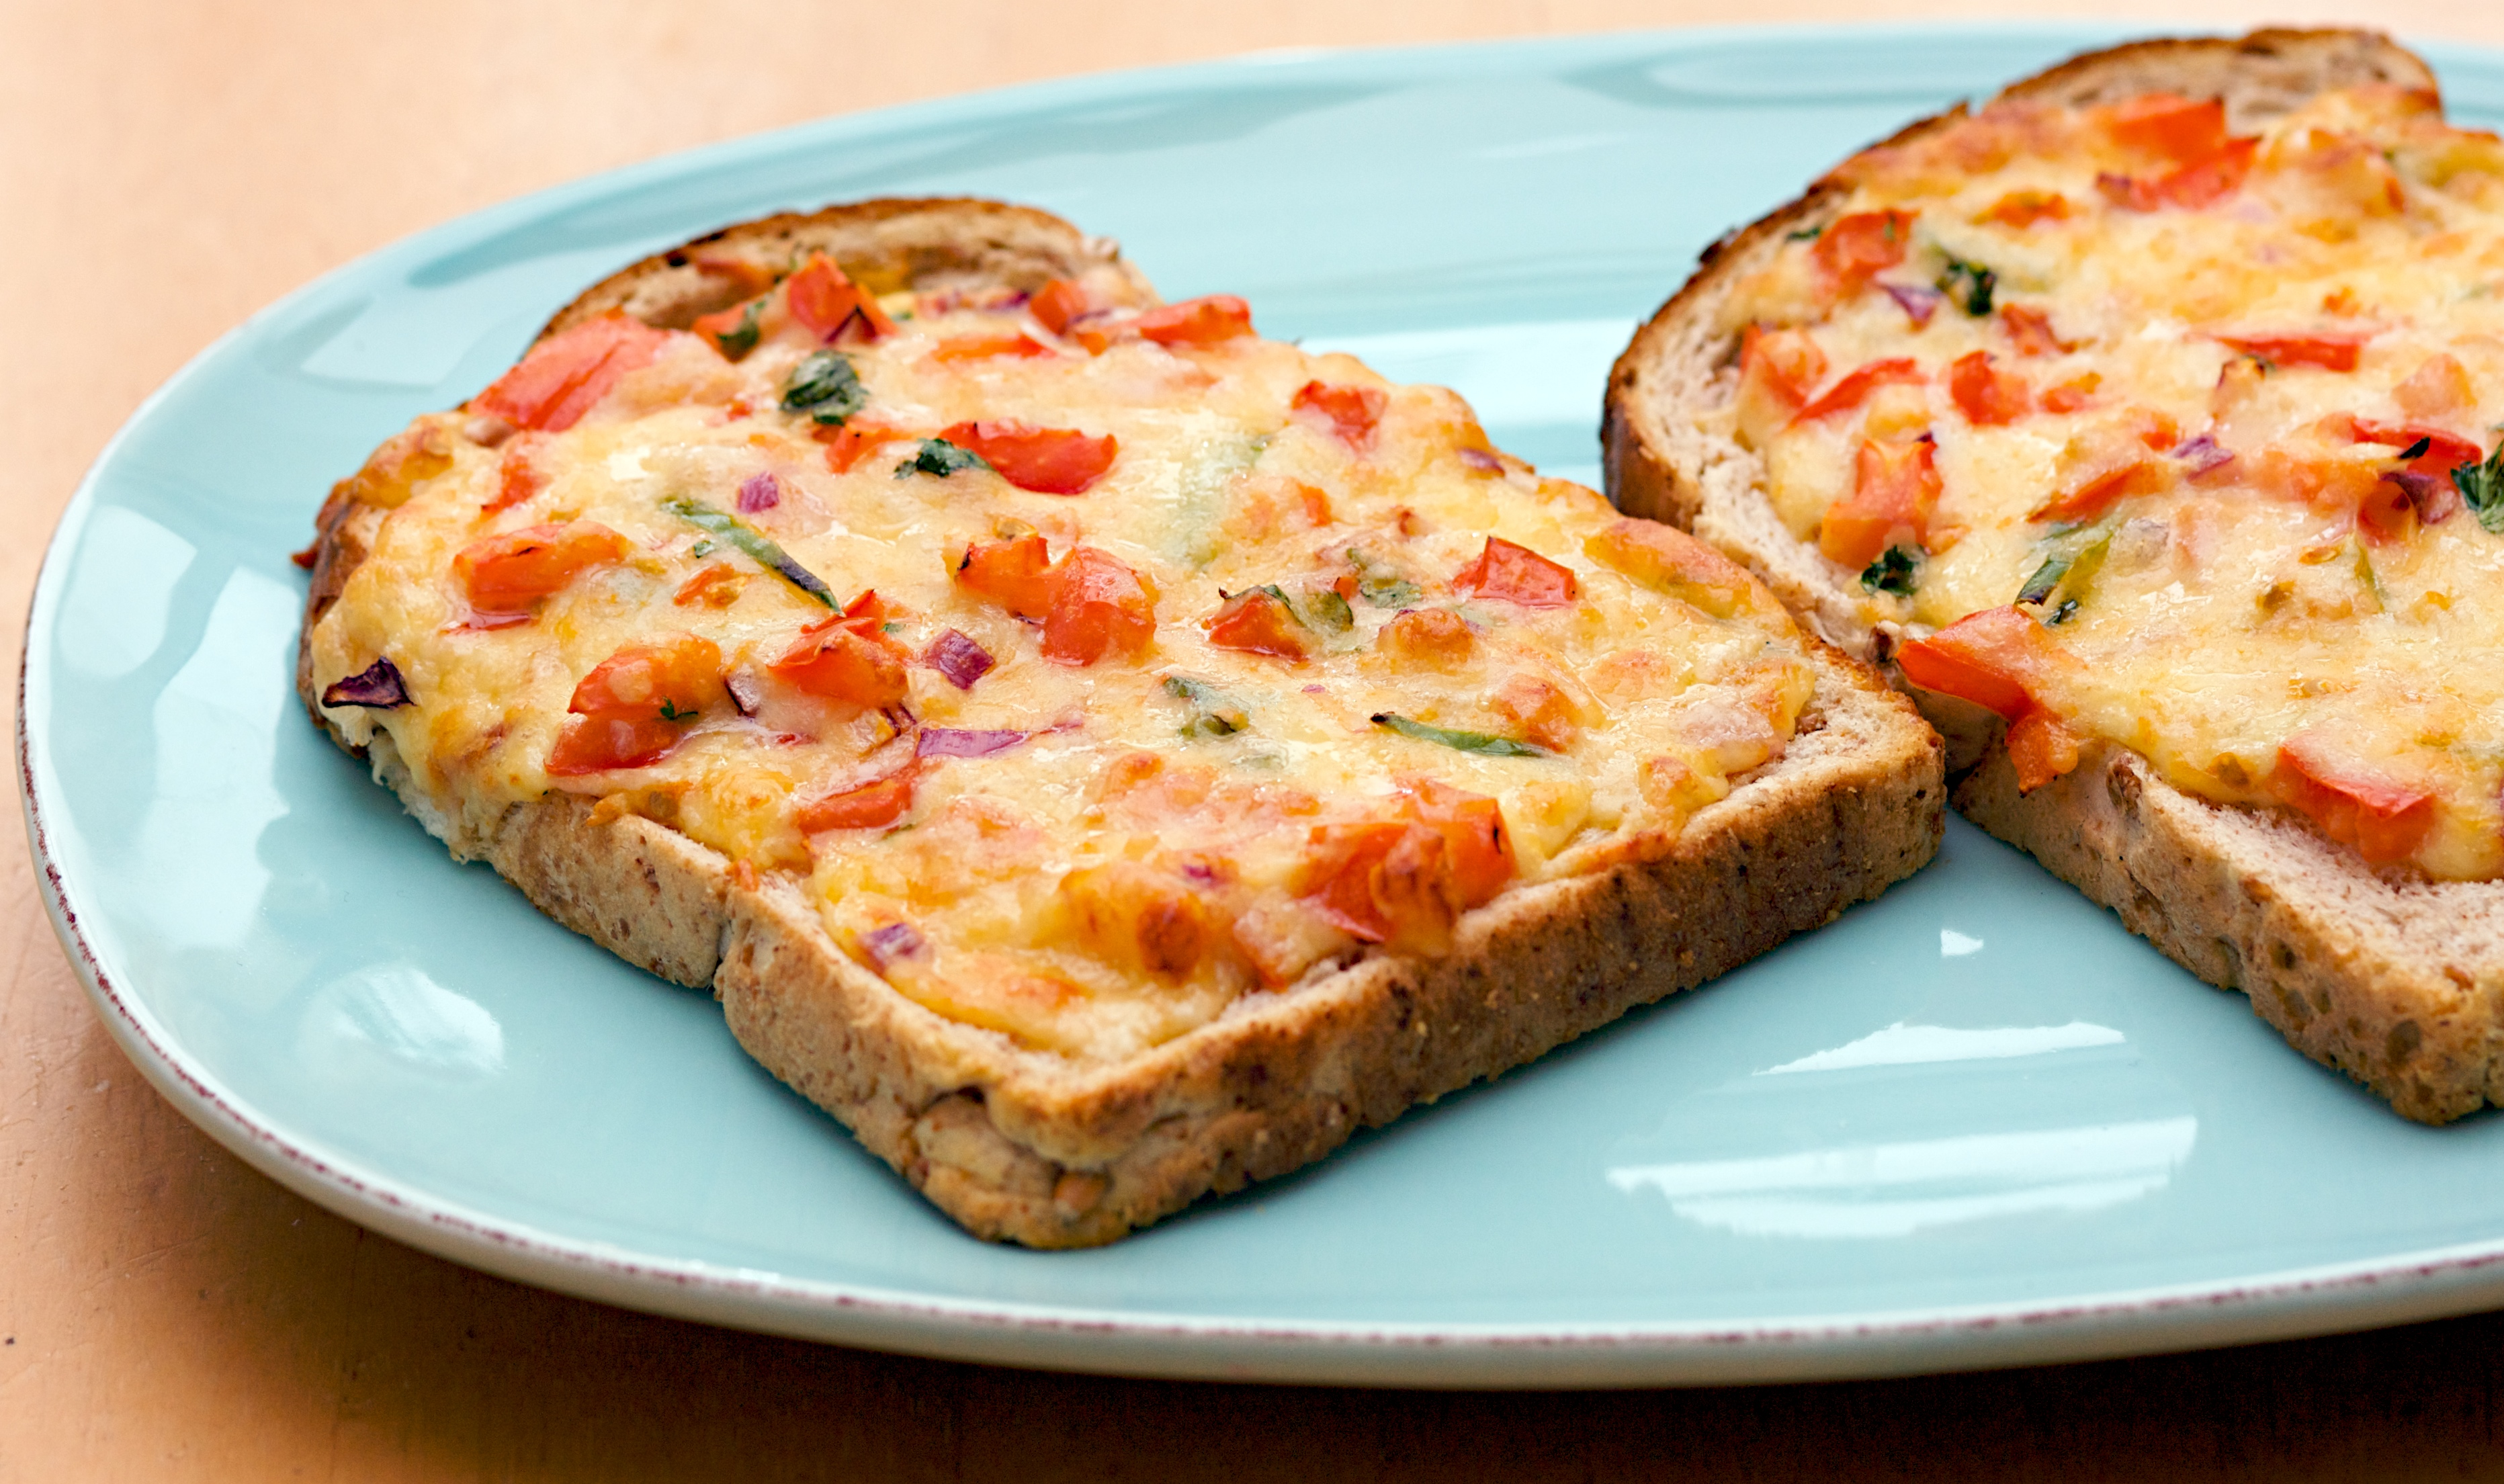 ... your regular cheese and toast and it s easy to throw together with